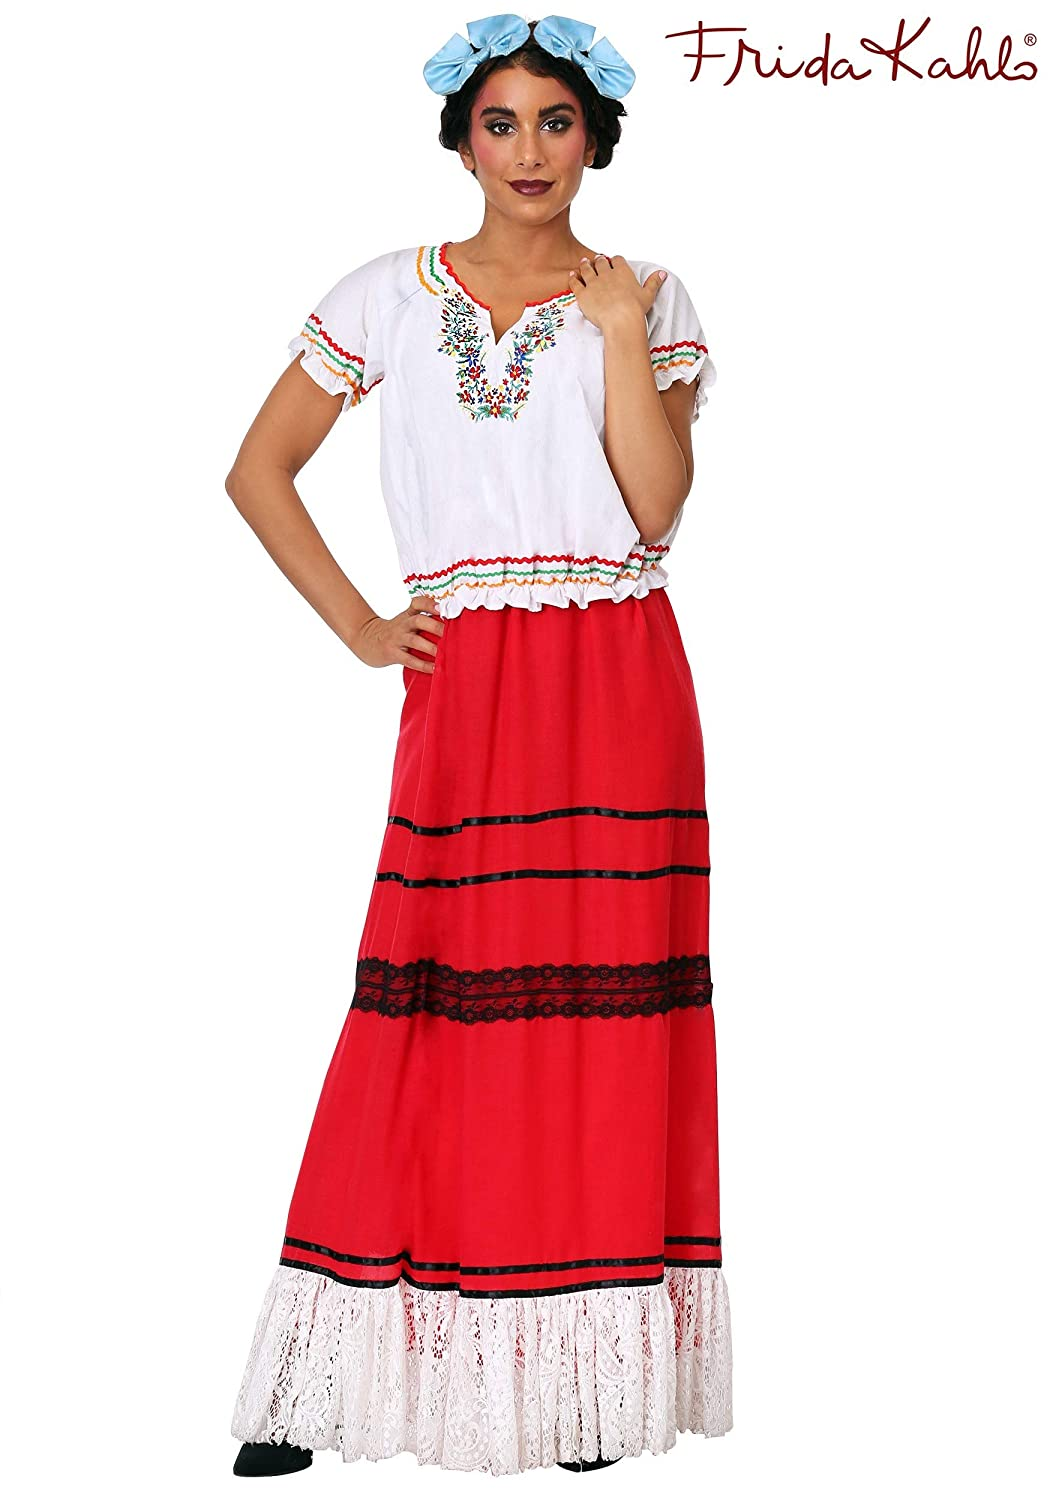 Damens's ROT Frida Kahlo Fancy Dress Costume X-Large